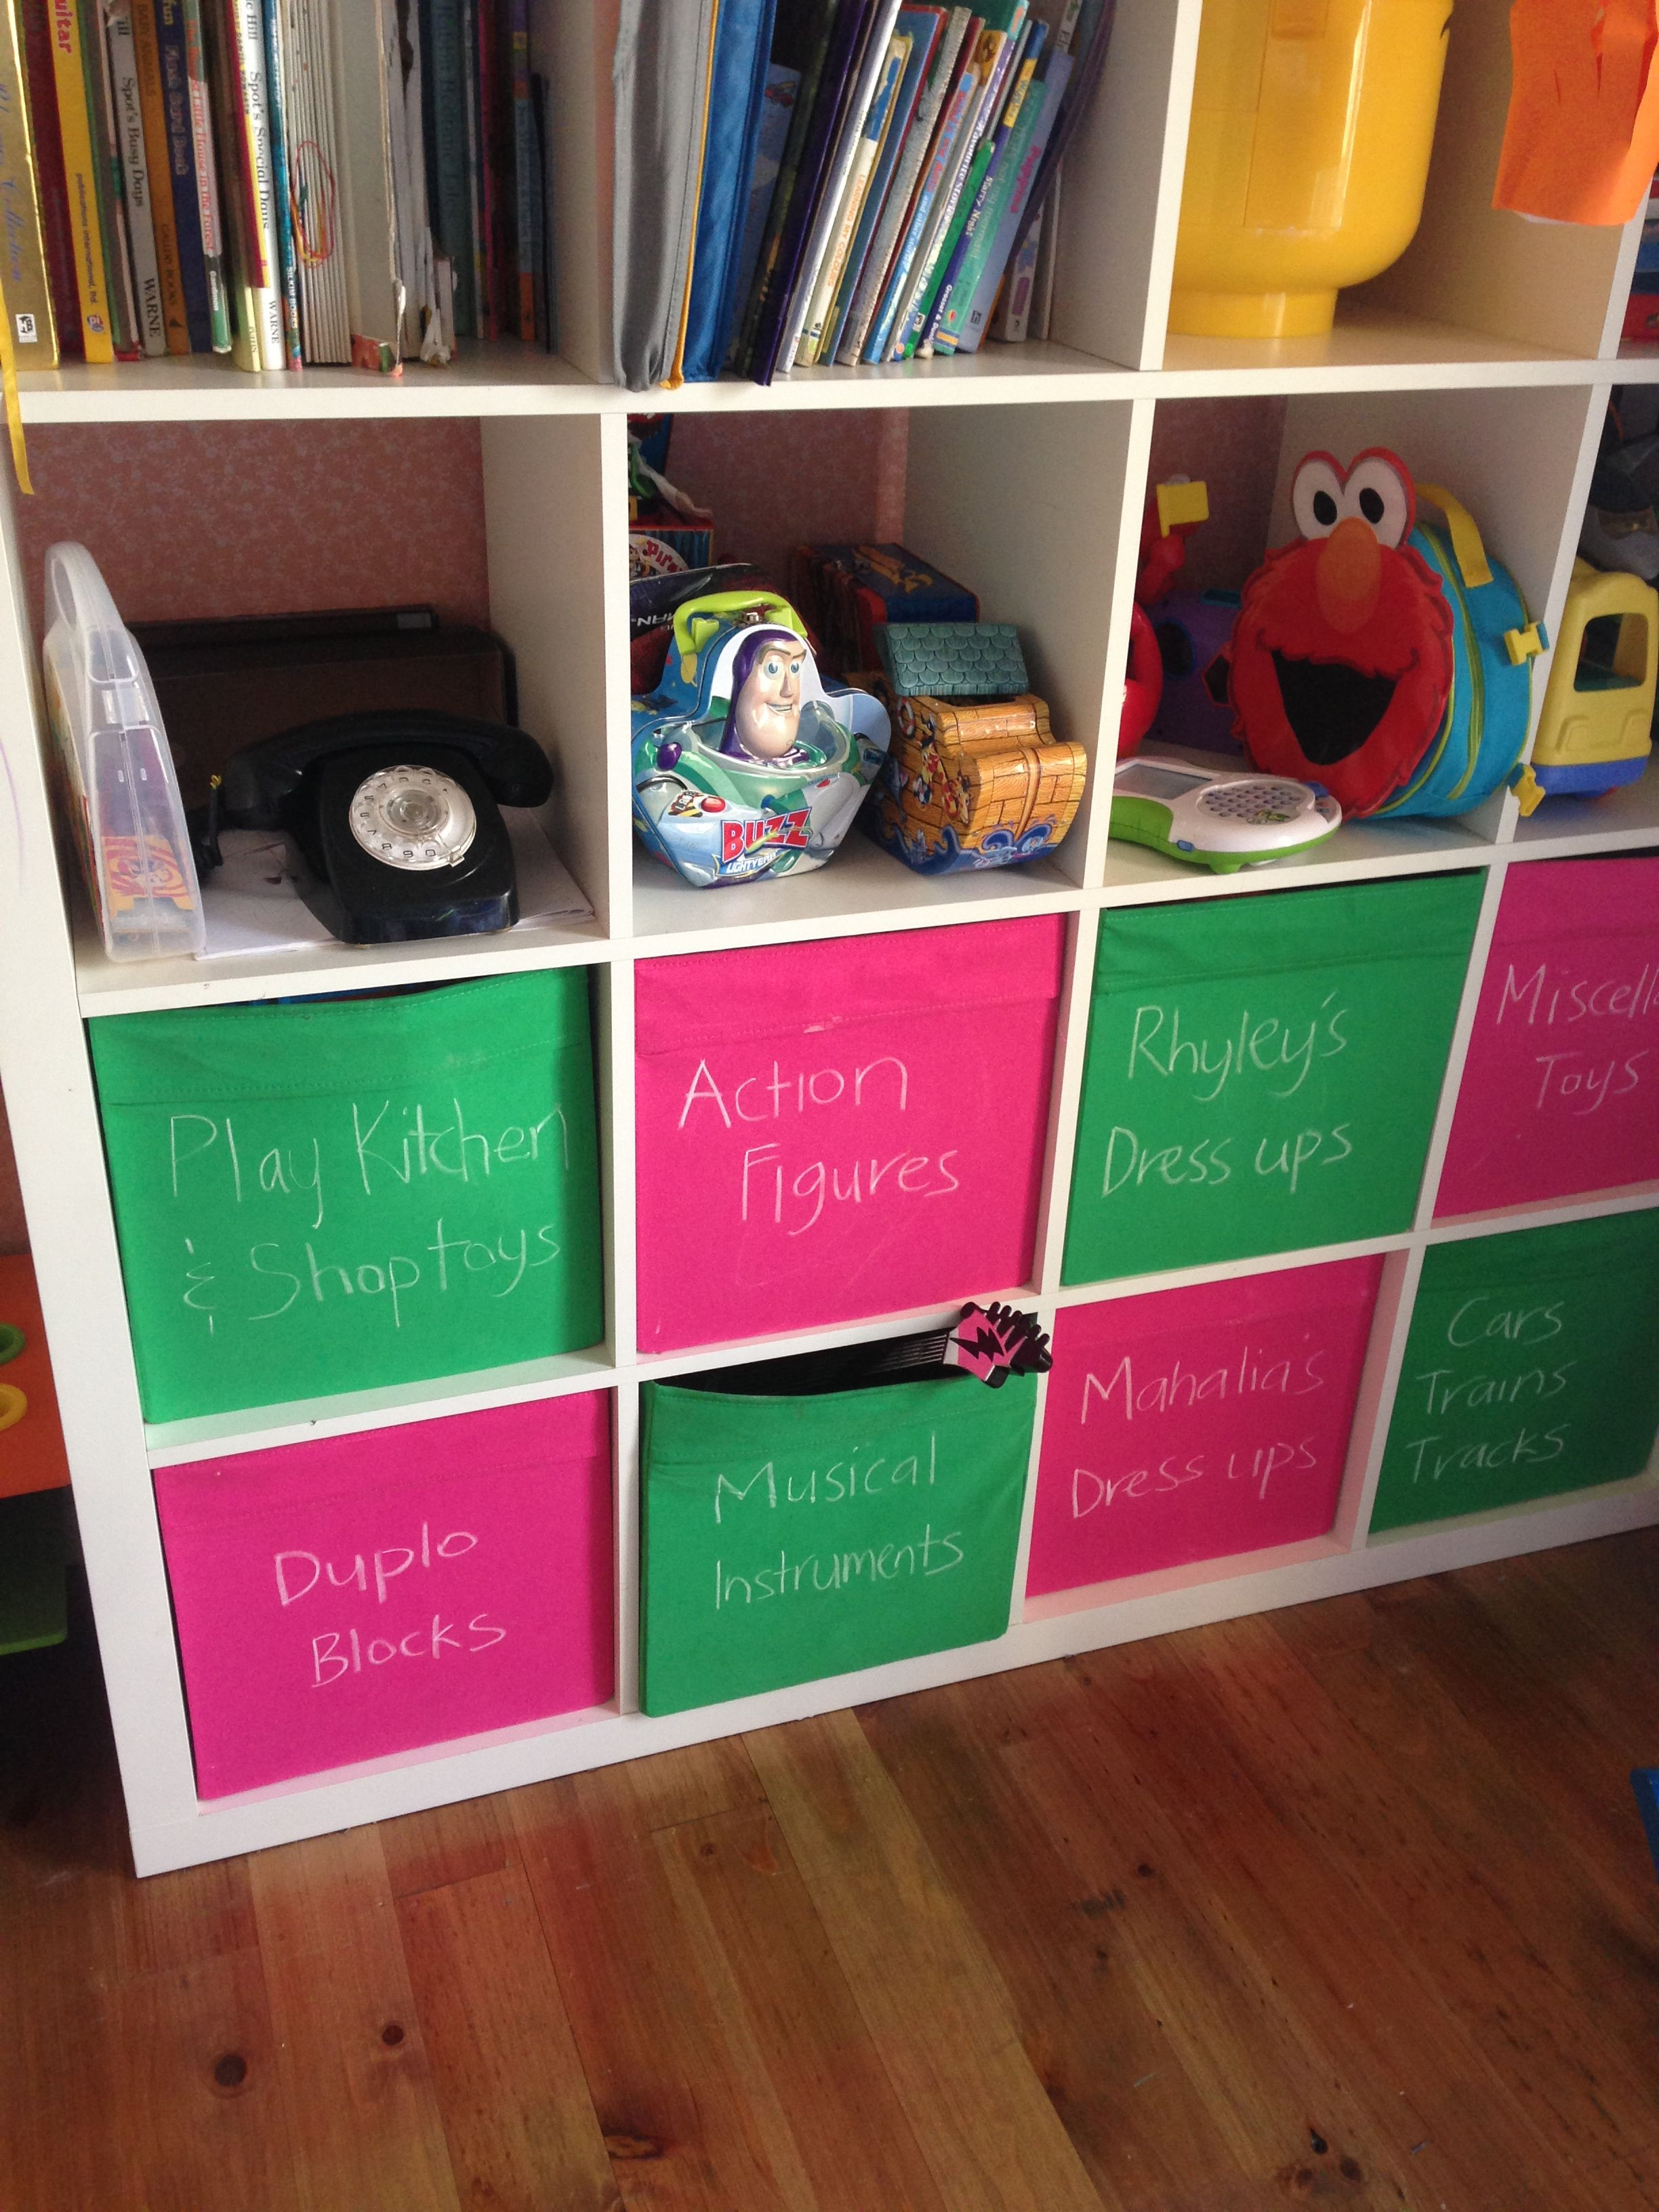 Childrens Kids Bedroom Furniture Set Toy Chest Boxes Ikea: Kids Storage Idea. Cube Storage Shelves From Ikea. Pink